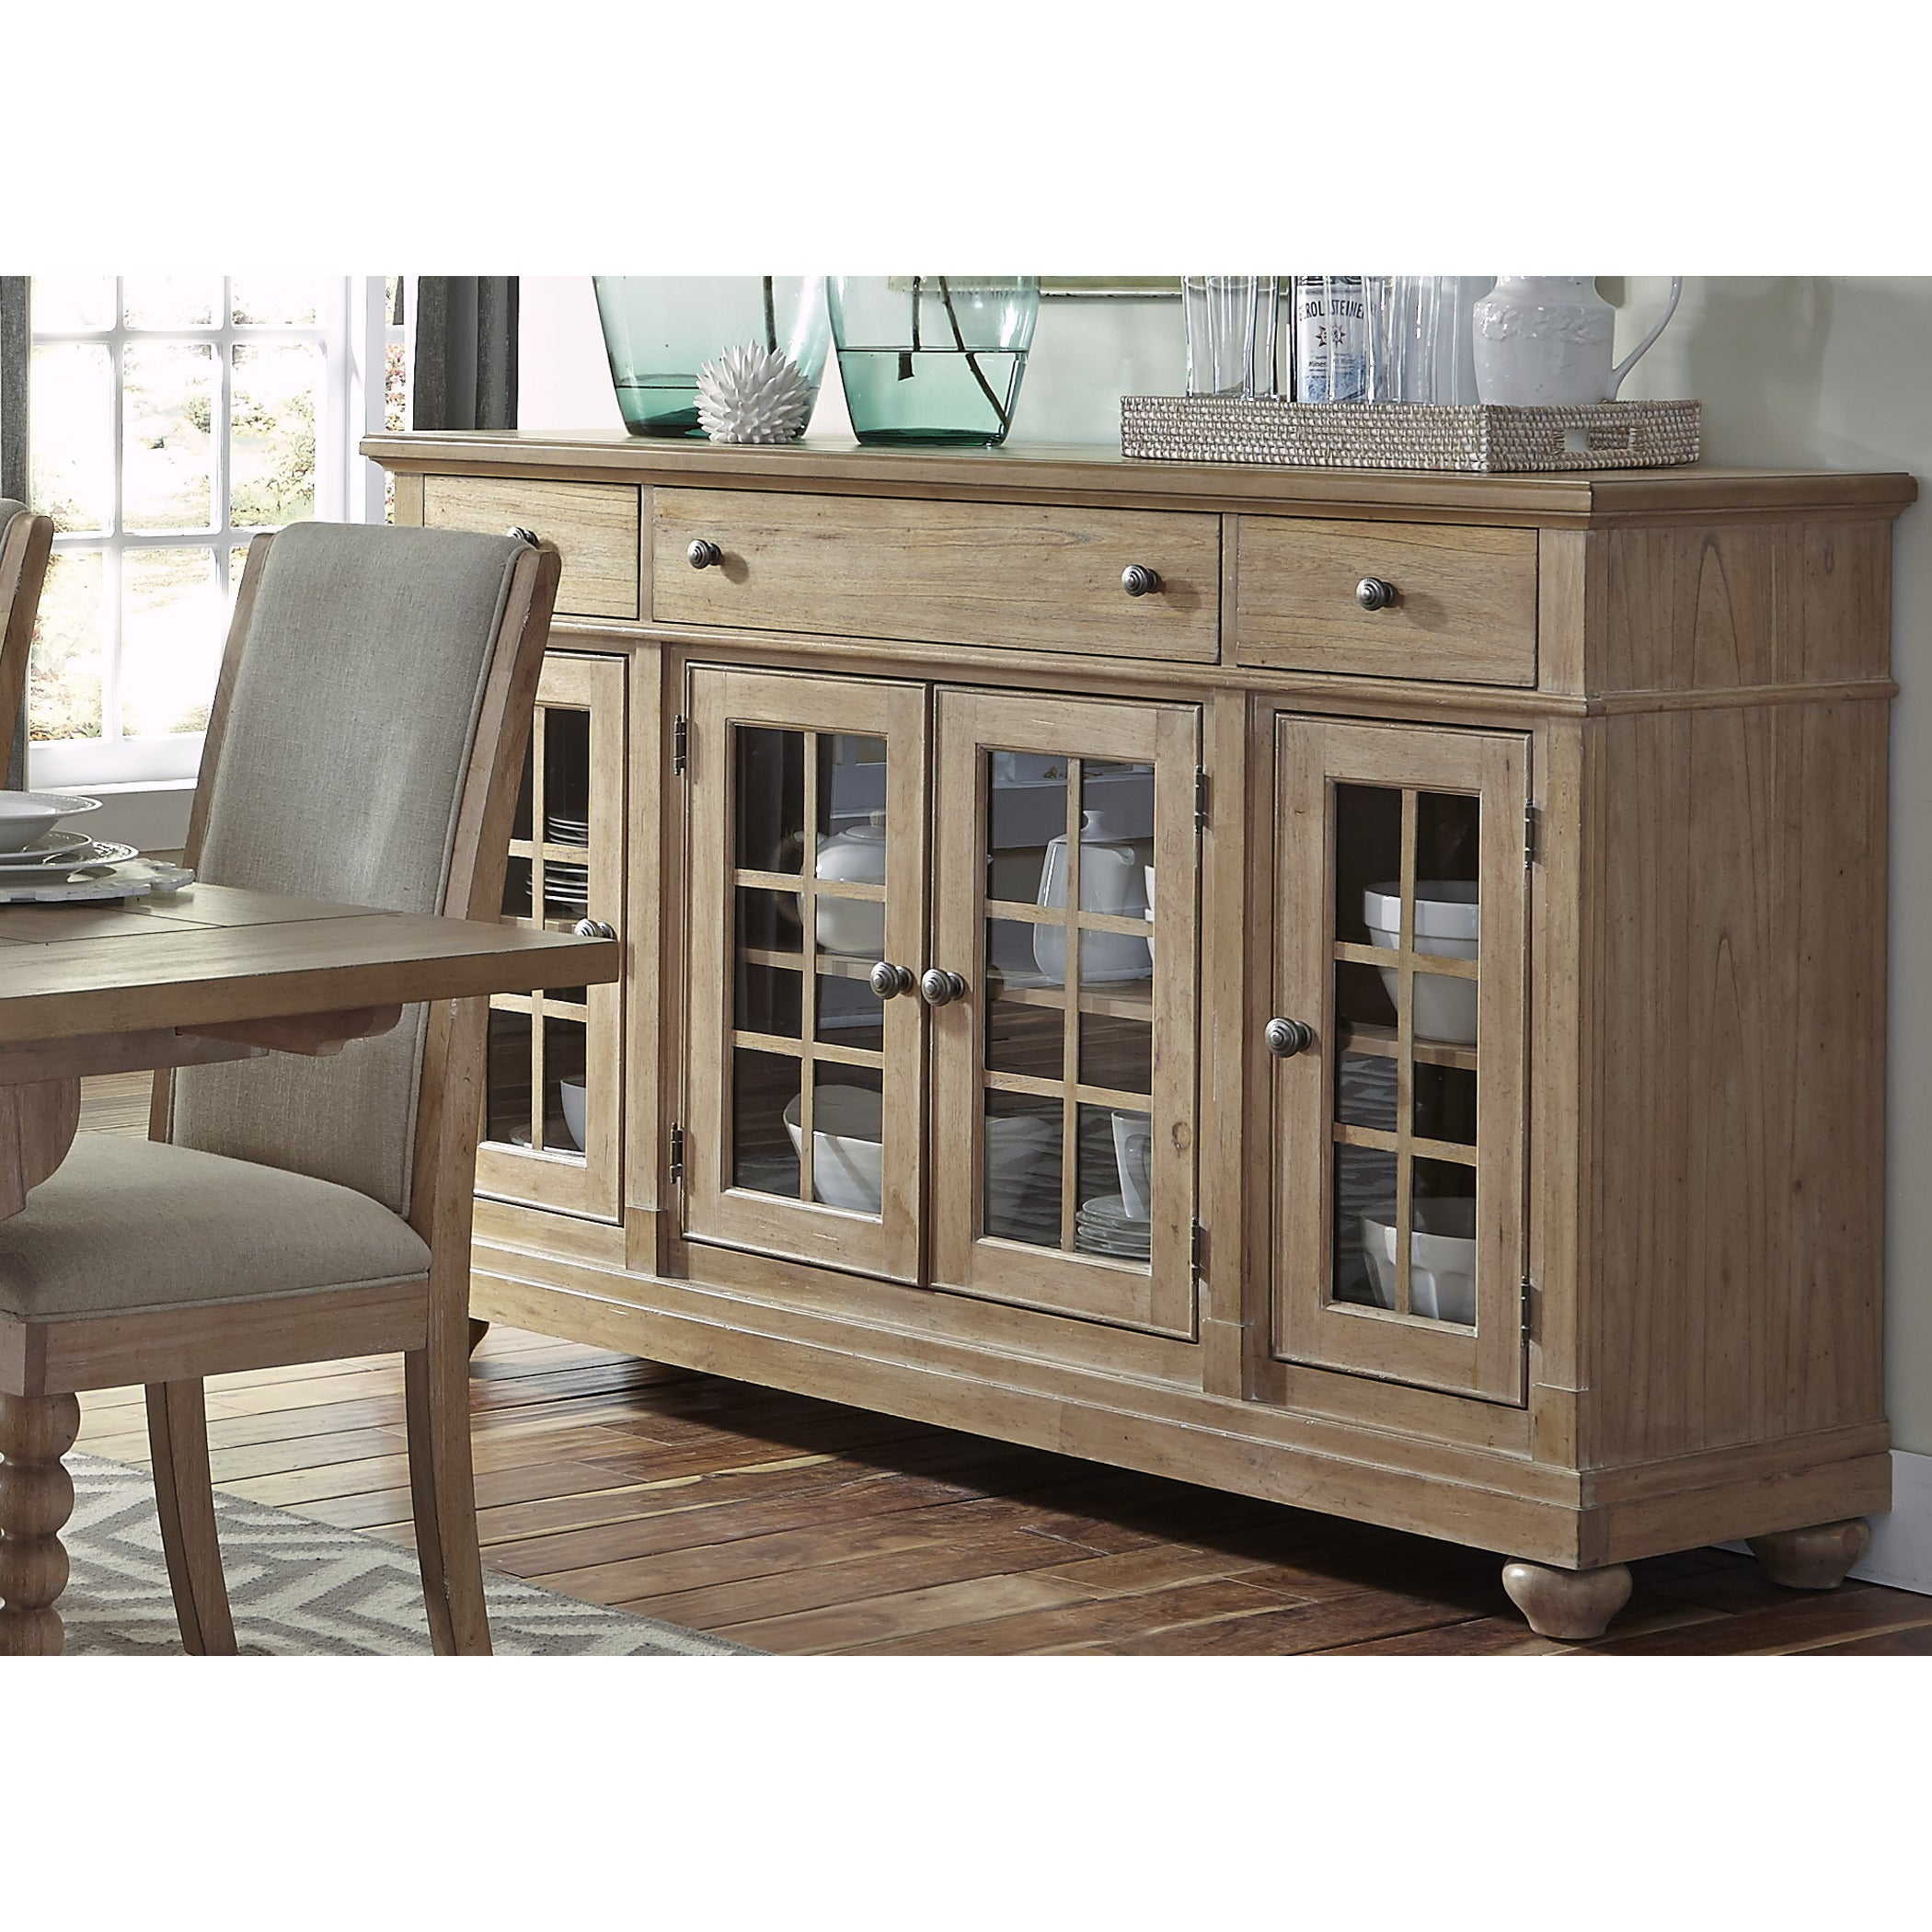 buffet sideboards cottages kitchen french kutskokitchen country sideboard buffets cottage and